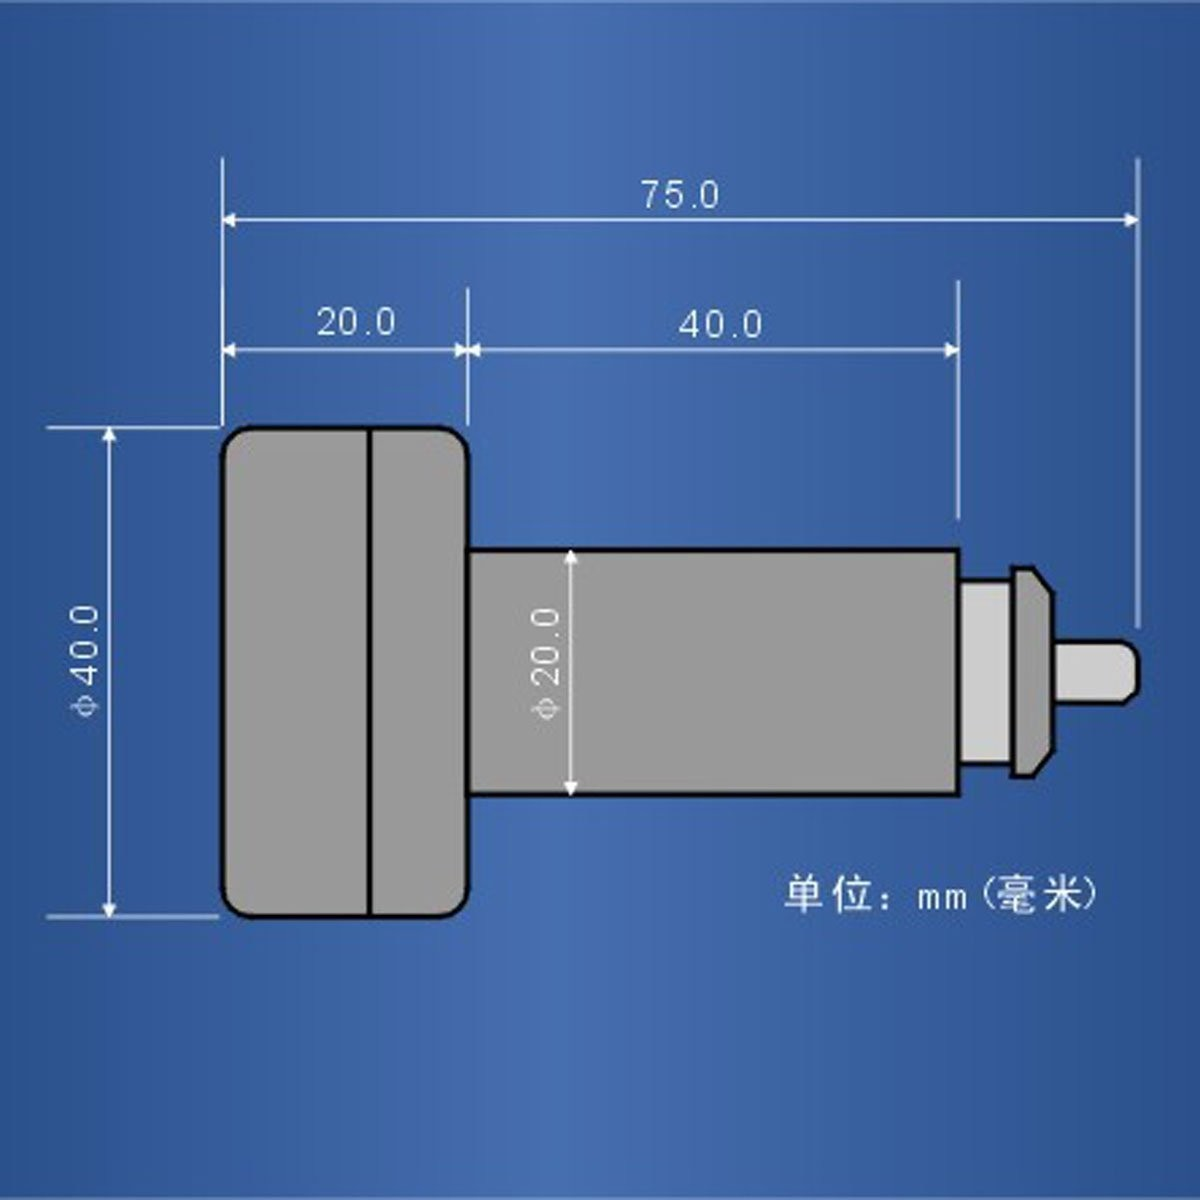 Cigarette Lighter Usb Charger Schematic The Best 2018 Plug Wiring Diagram Mini Car Trusted